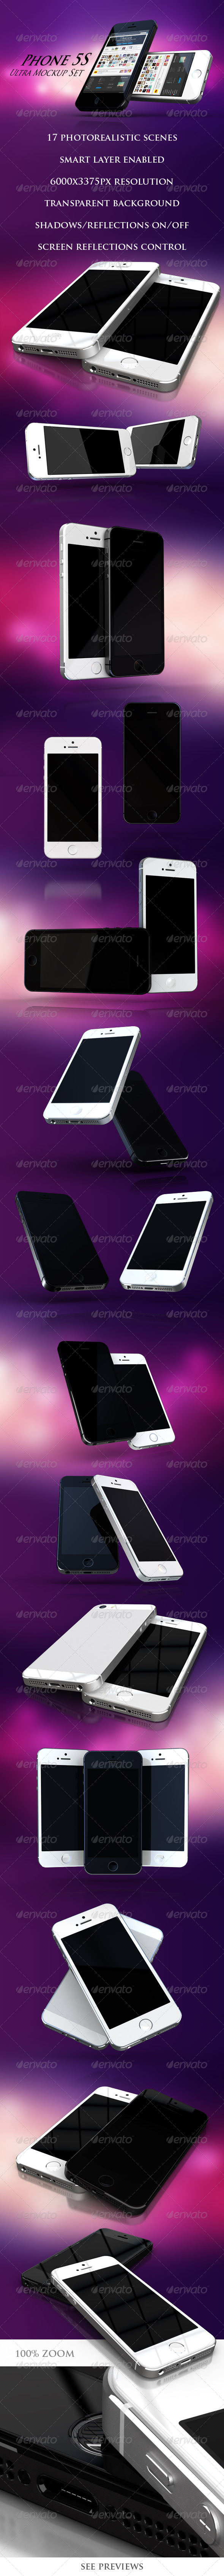 Phone 5S Ultra Mockup Set